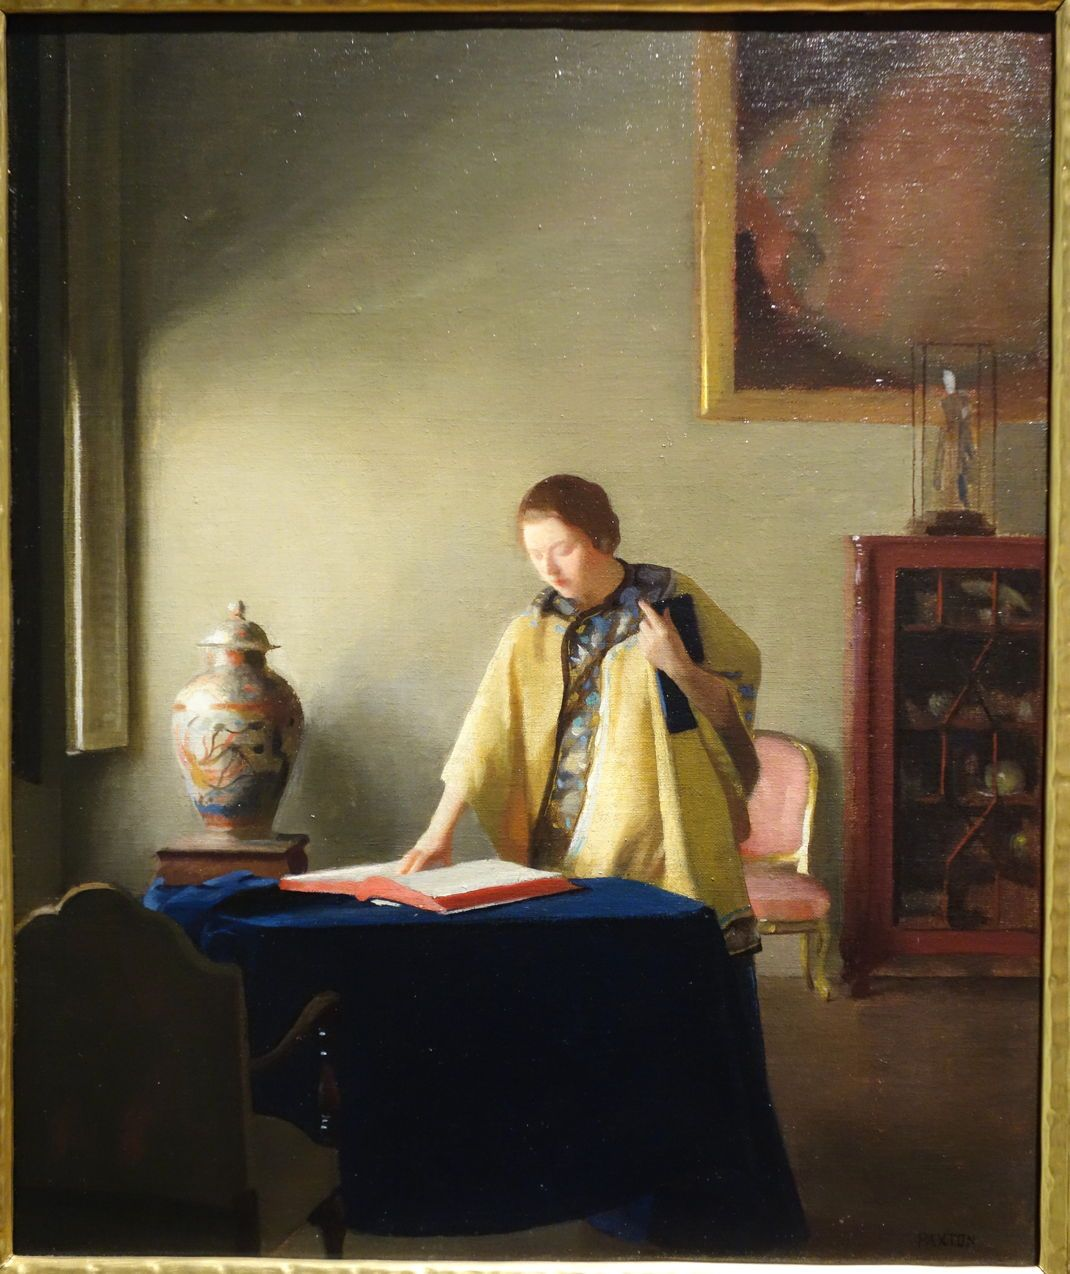 Woman with Book by William McGregor Paxton (1910)